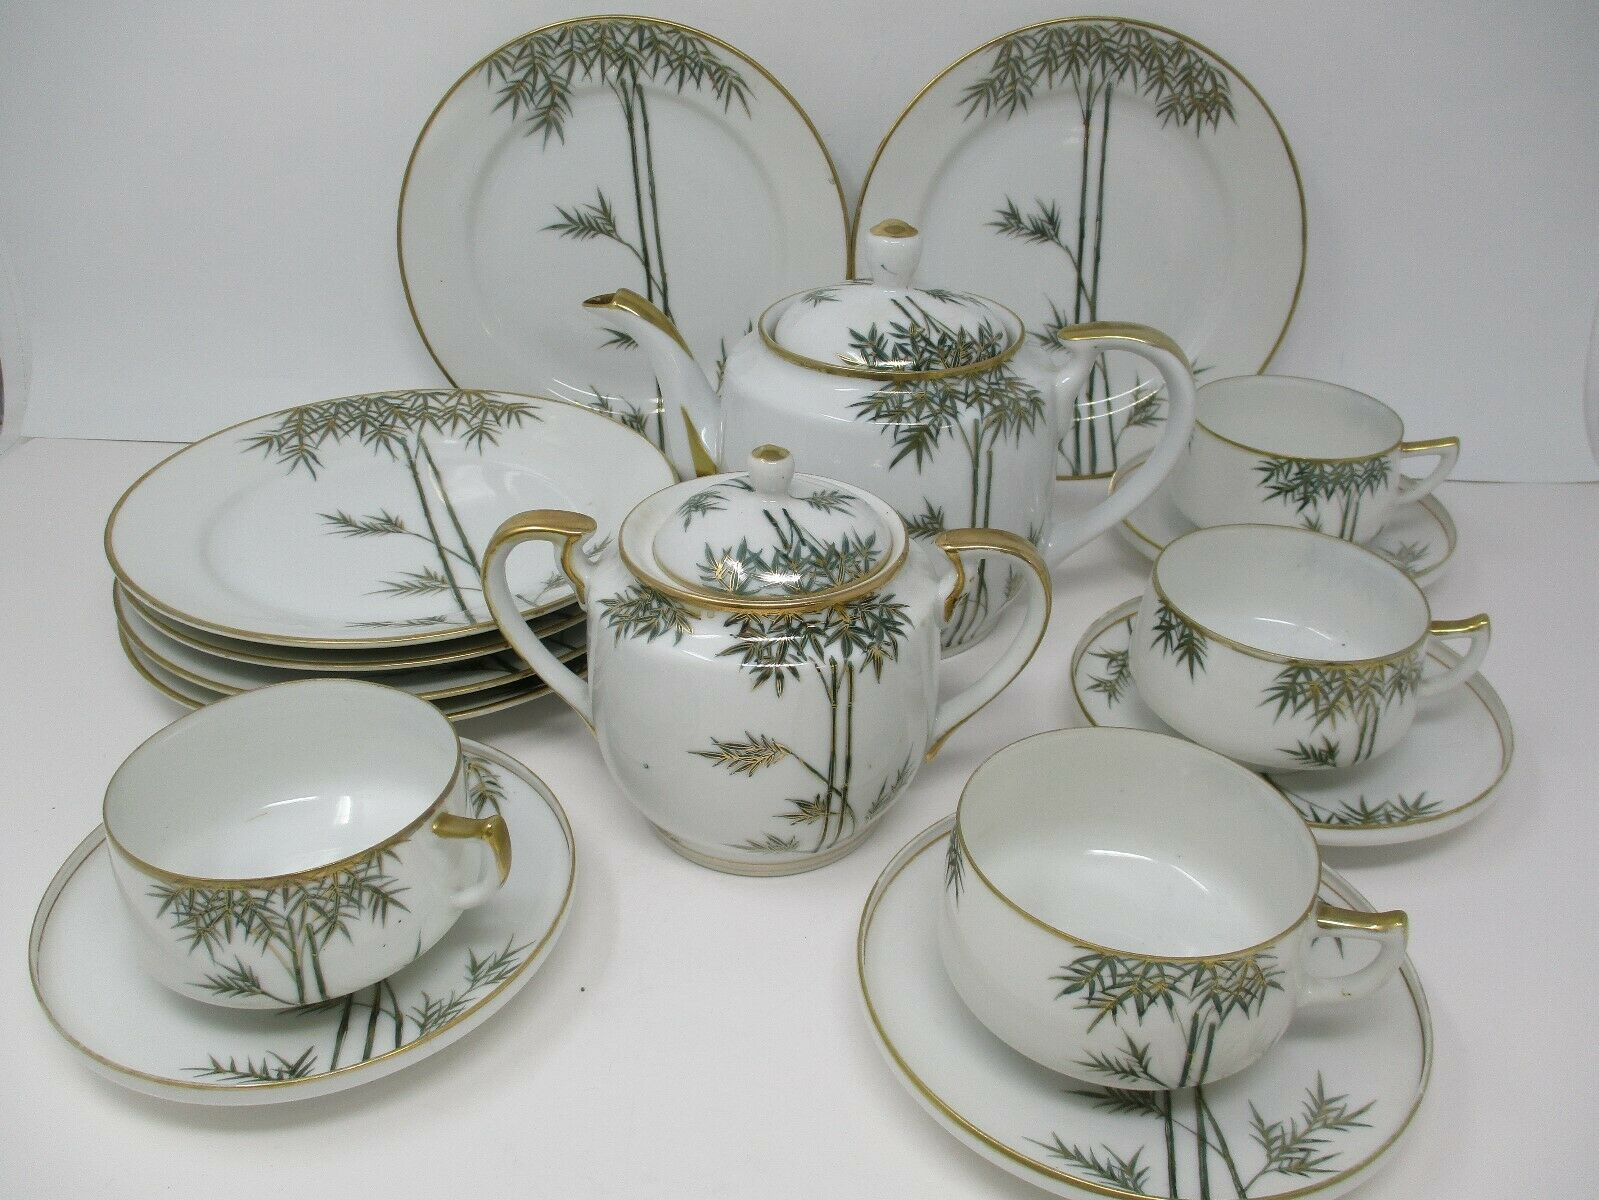 Vintage Japanese Bamboo Pattern 16 Pc Tea Set With Gold Trim